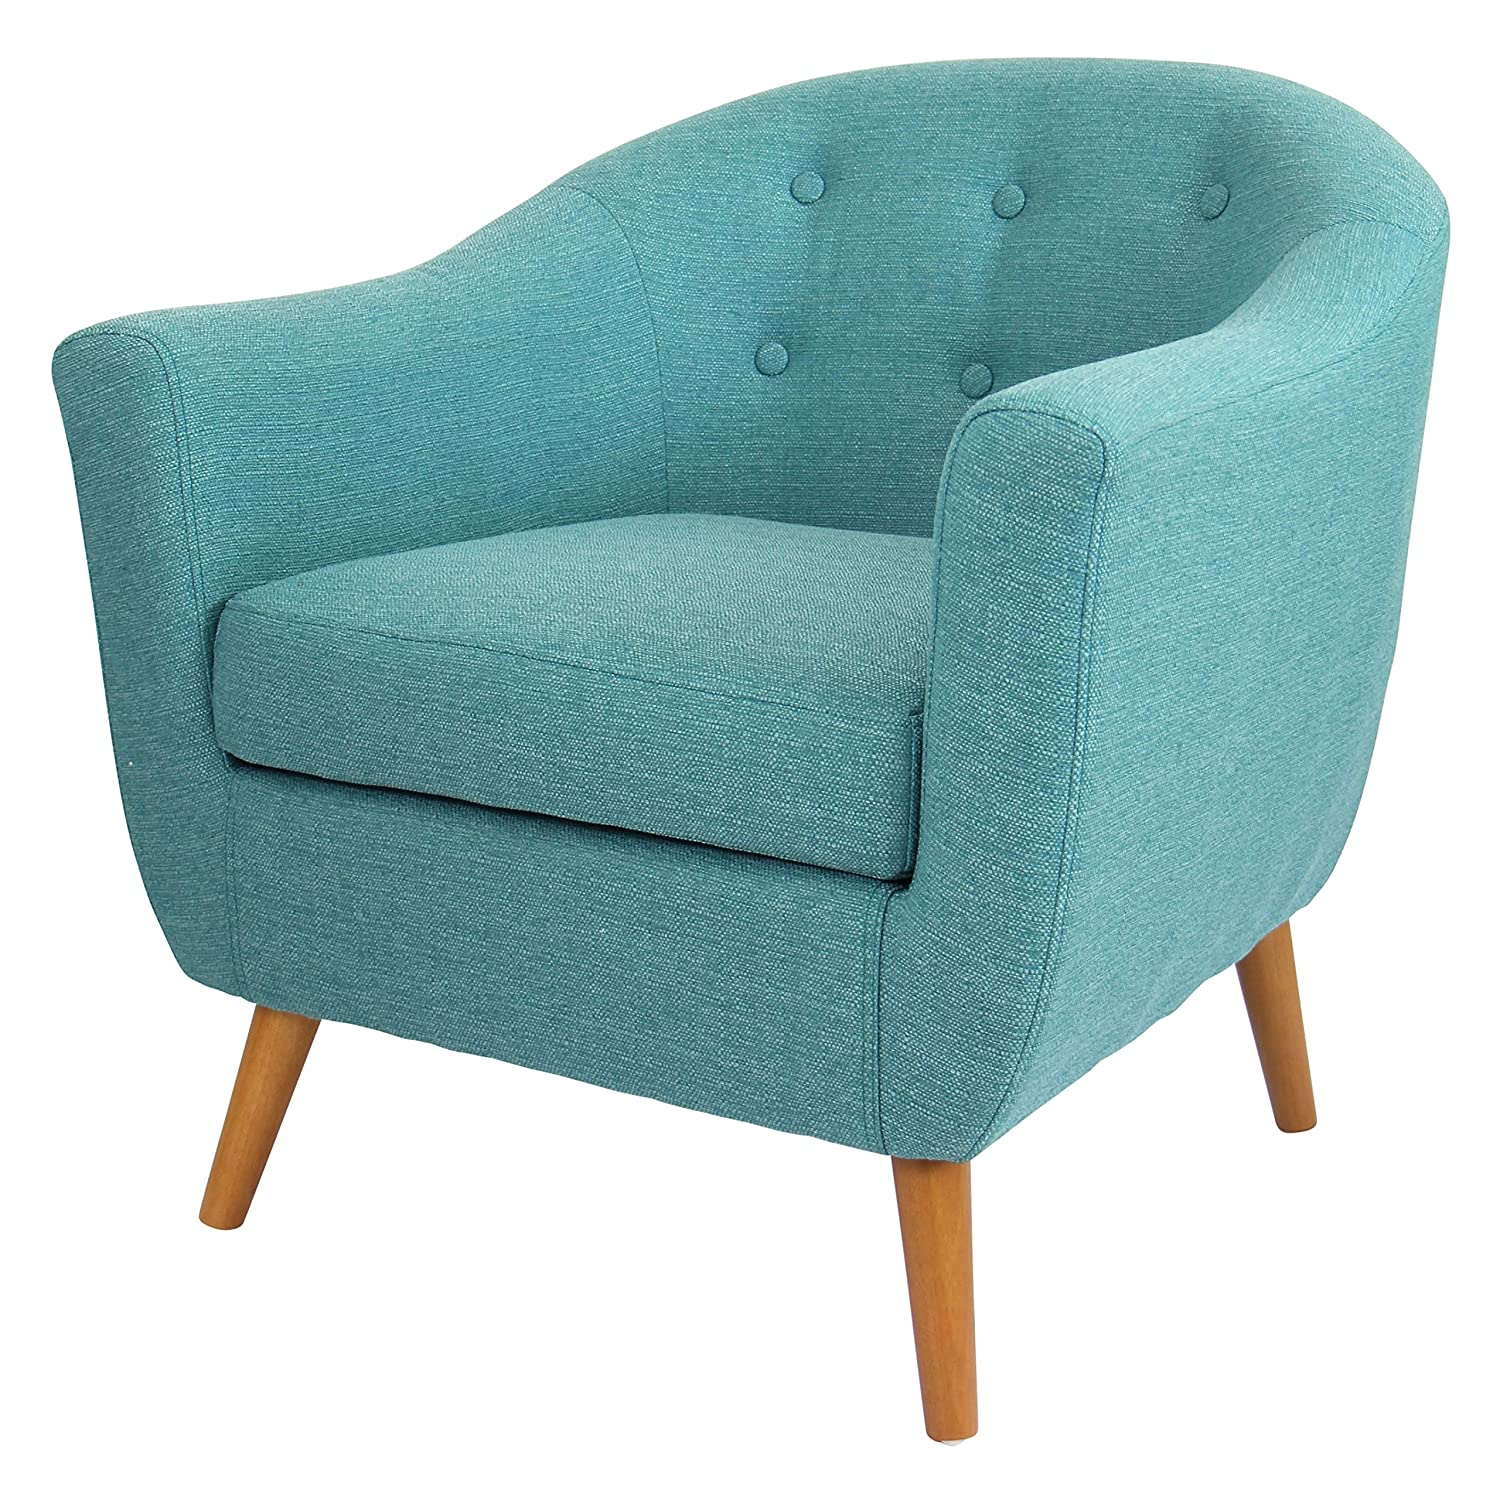 Amazon.com: Mid Century Modern Style Teal Button-tufted Upholstered ...